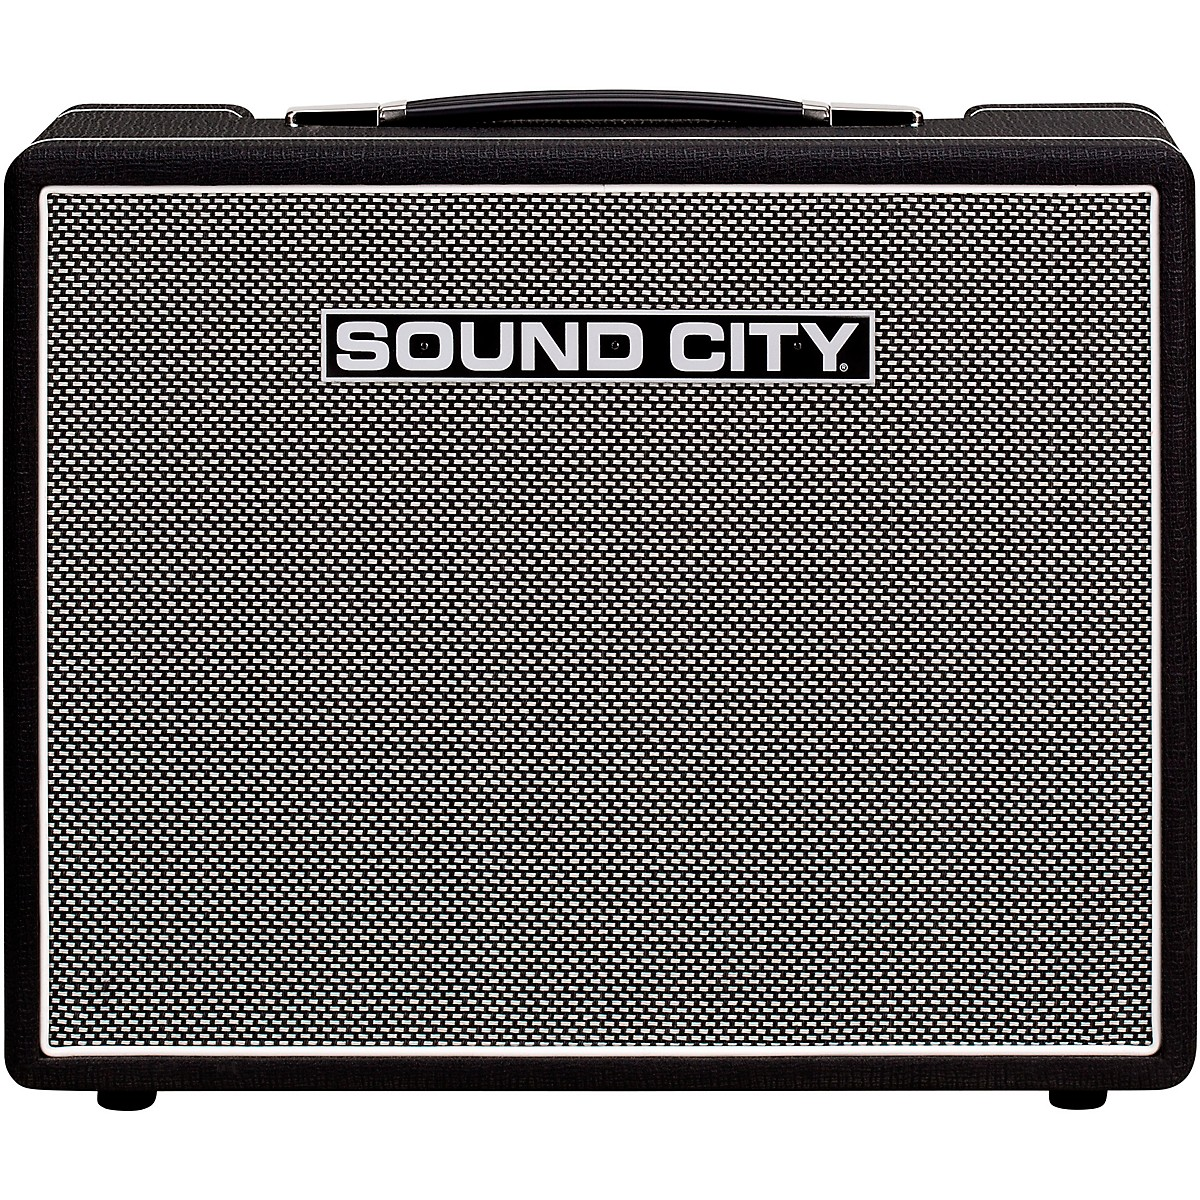 Sound City SC20 20W 1x12 Tube Guitar Combo Amp